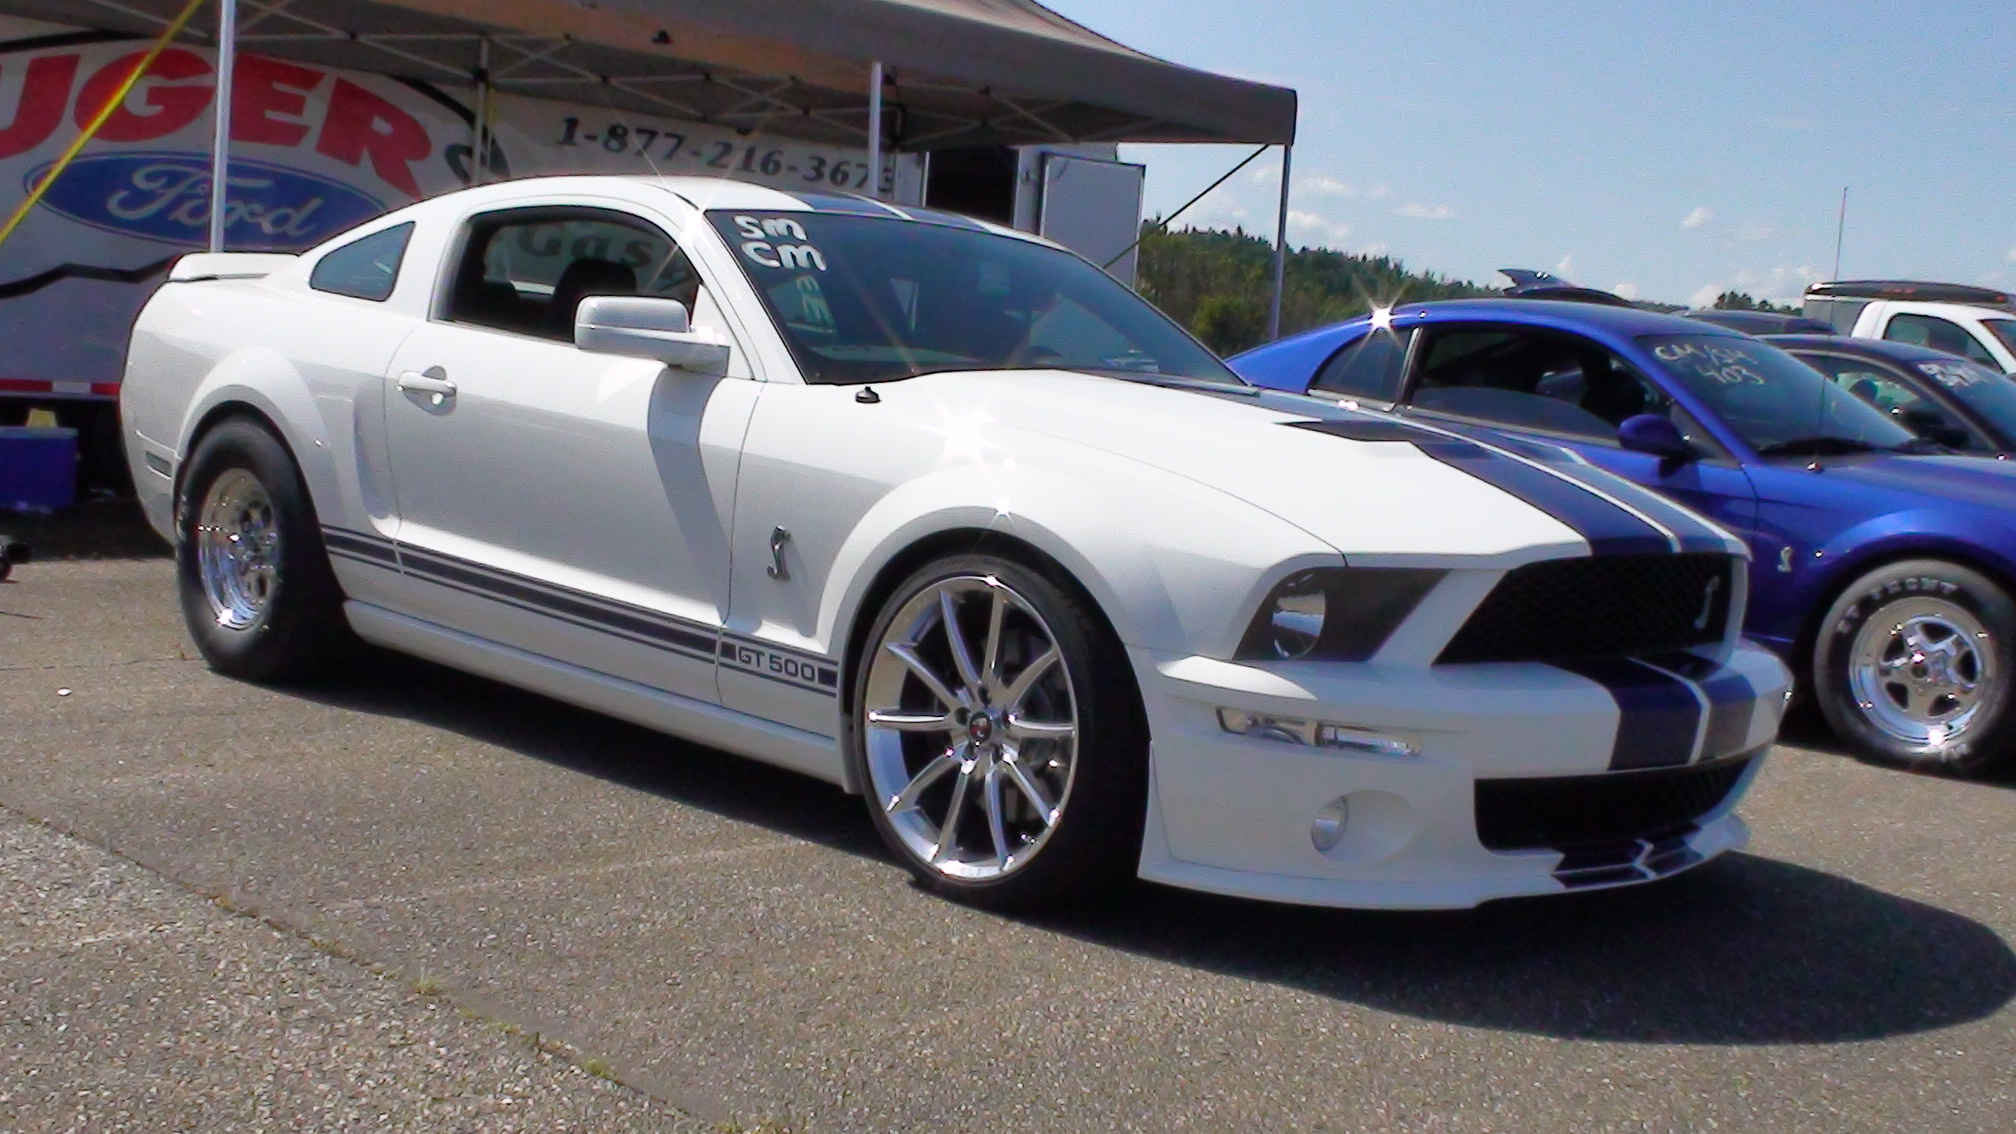 2007 Ford Mustang Shelby-GT500 1/4 mile Drag Racing timeslip specs 0